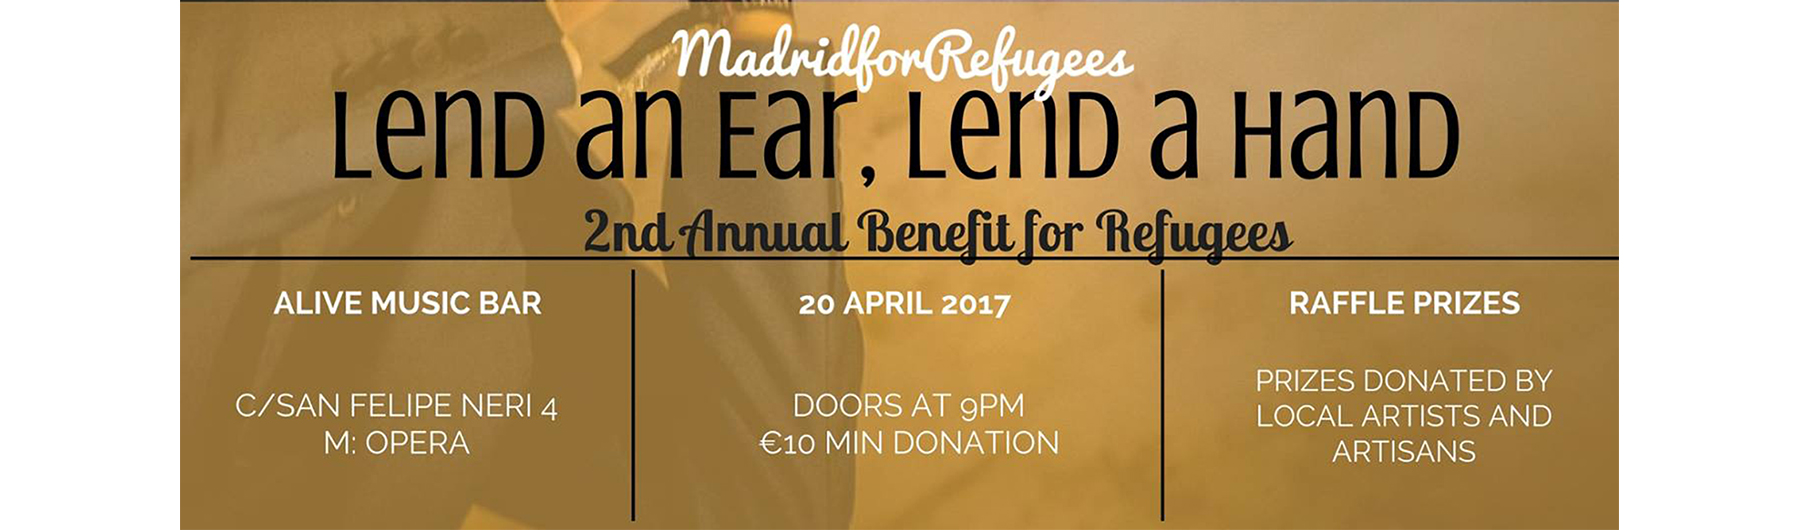 Ticket donation payment page for April 20th Refugee Benefit Concert